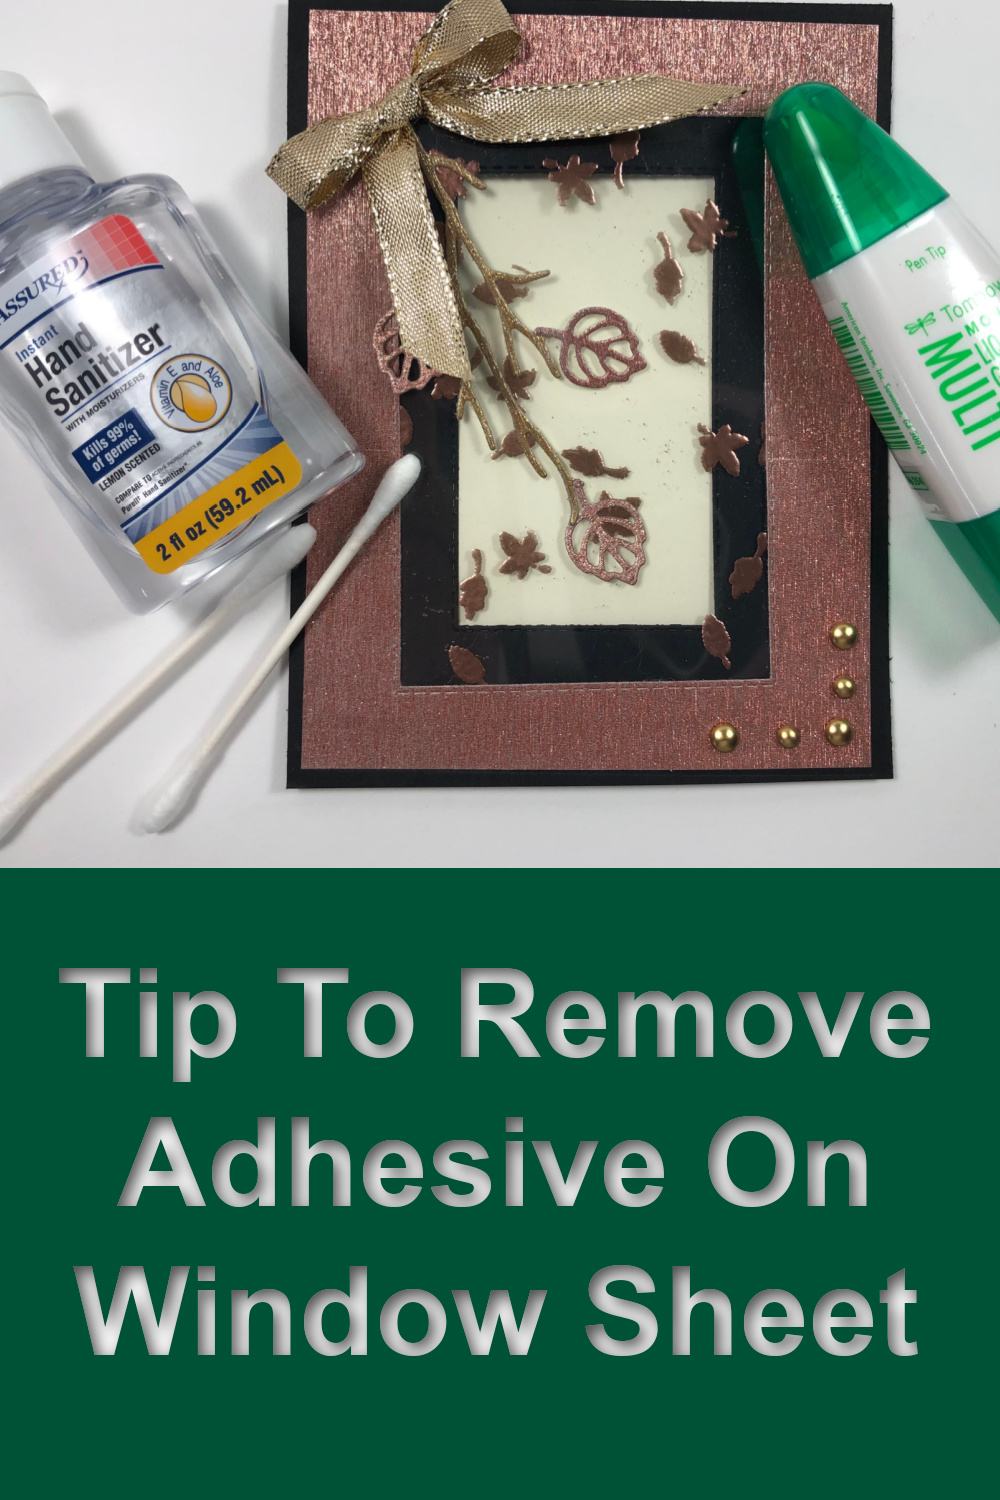 Tip Video On How To Remove Adhesive On A Window Sheet